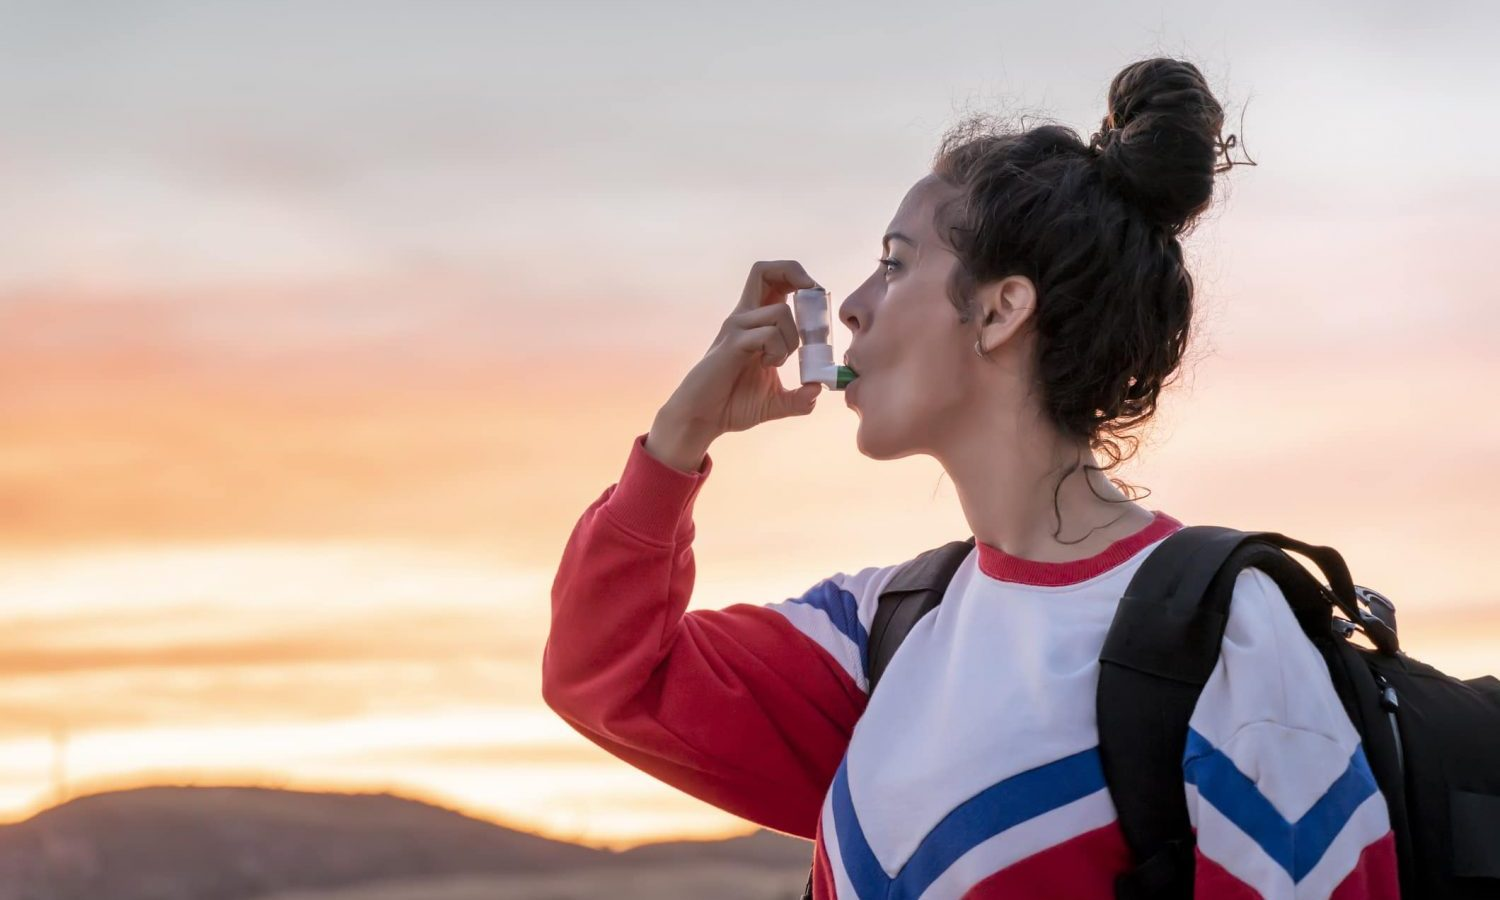 The FDA Objects To The Sale And Marketing Of Nasal, Ophthalmic, Inhalable CBD Products